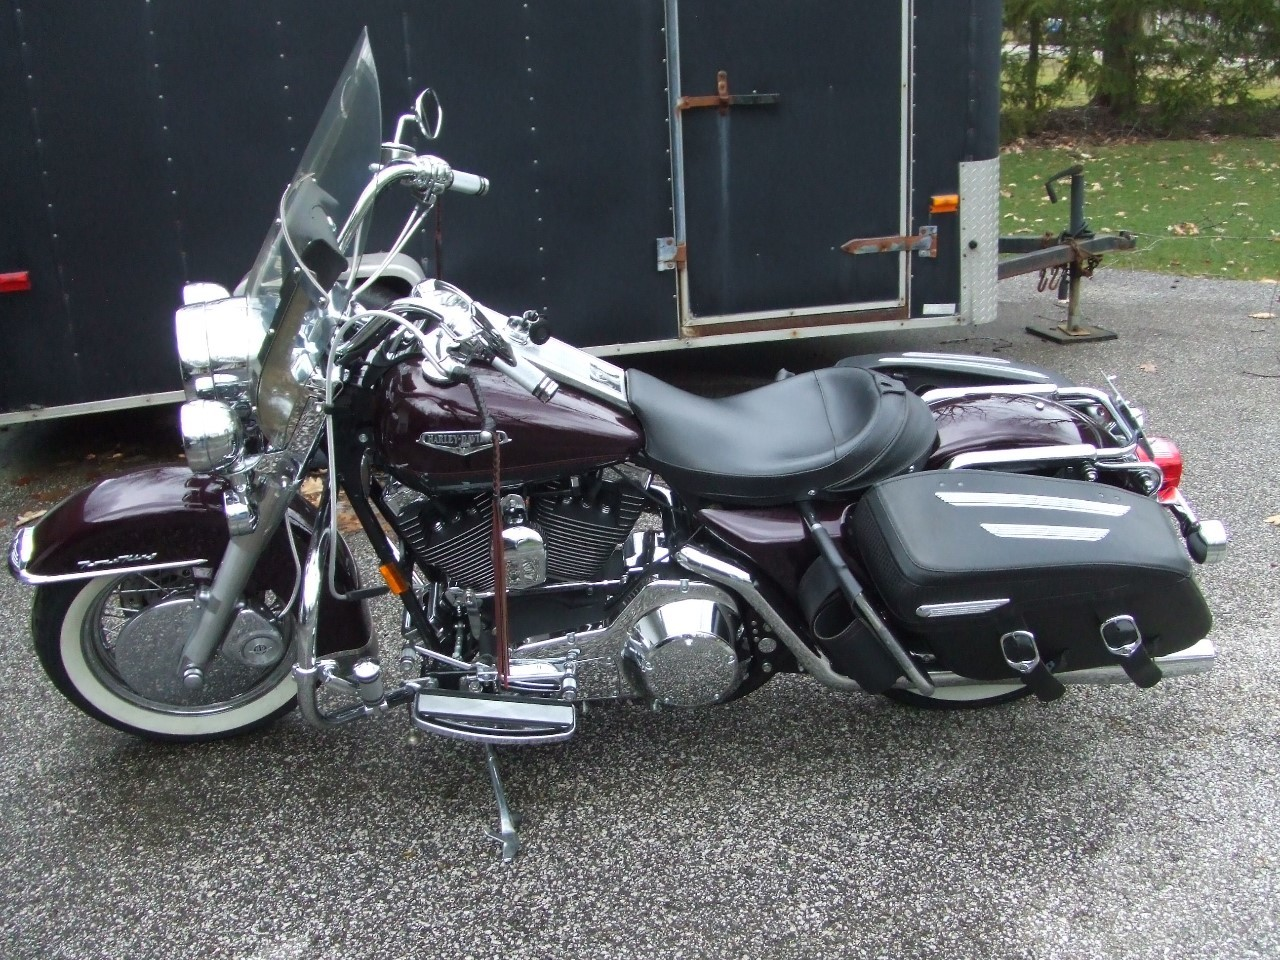 ohio - 1,649 harley--davidson motorcycles for sale